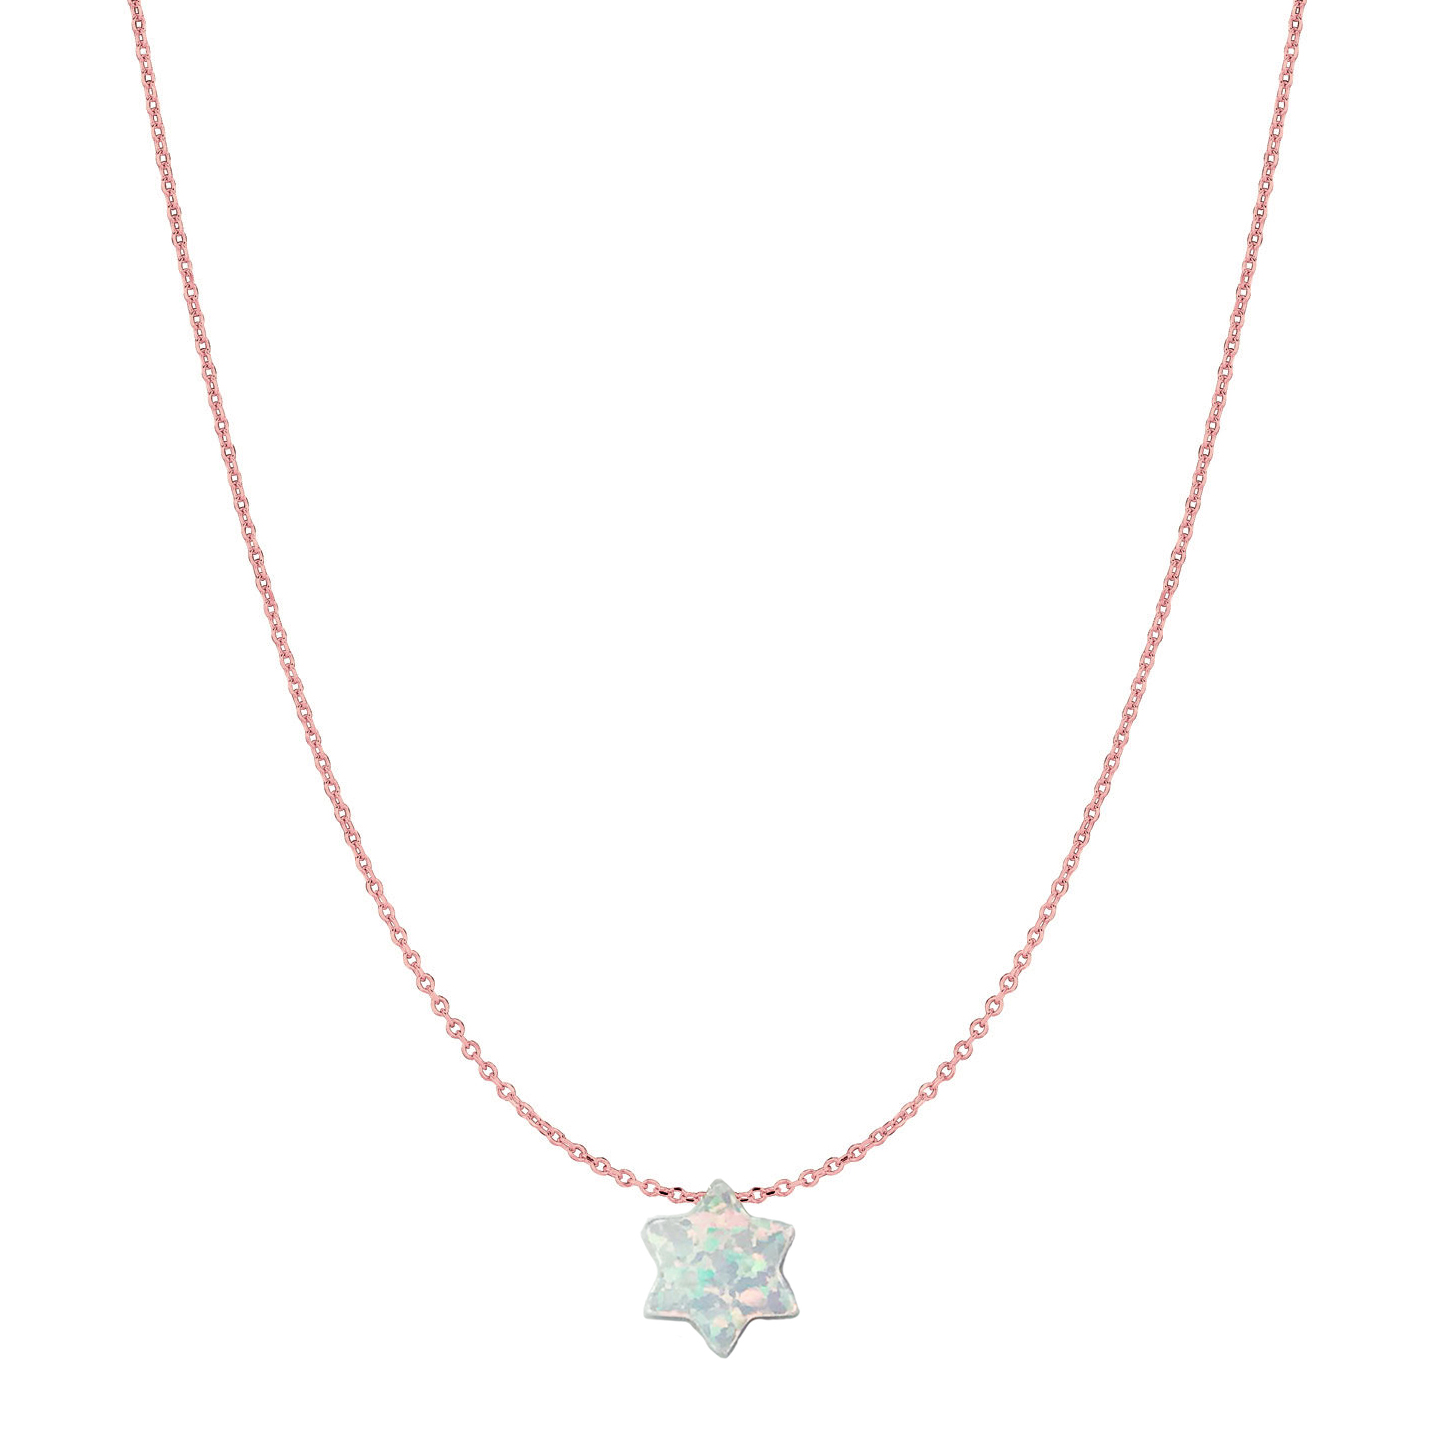 The 14 Karat Gold Pure White Opal Jewish Star of David Necklace